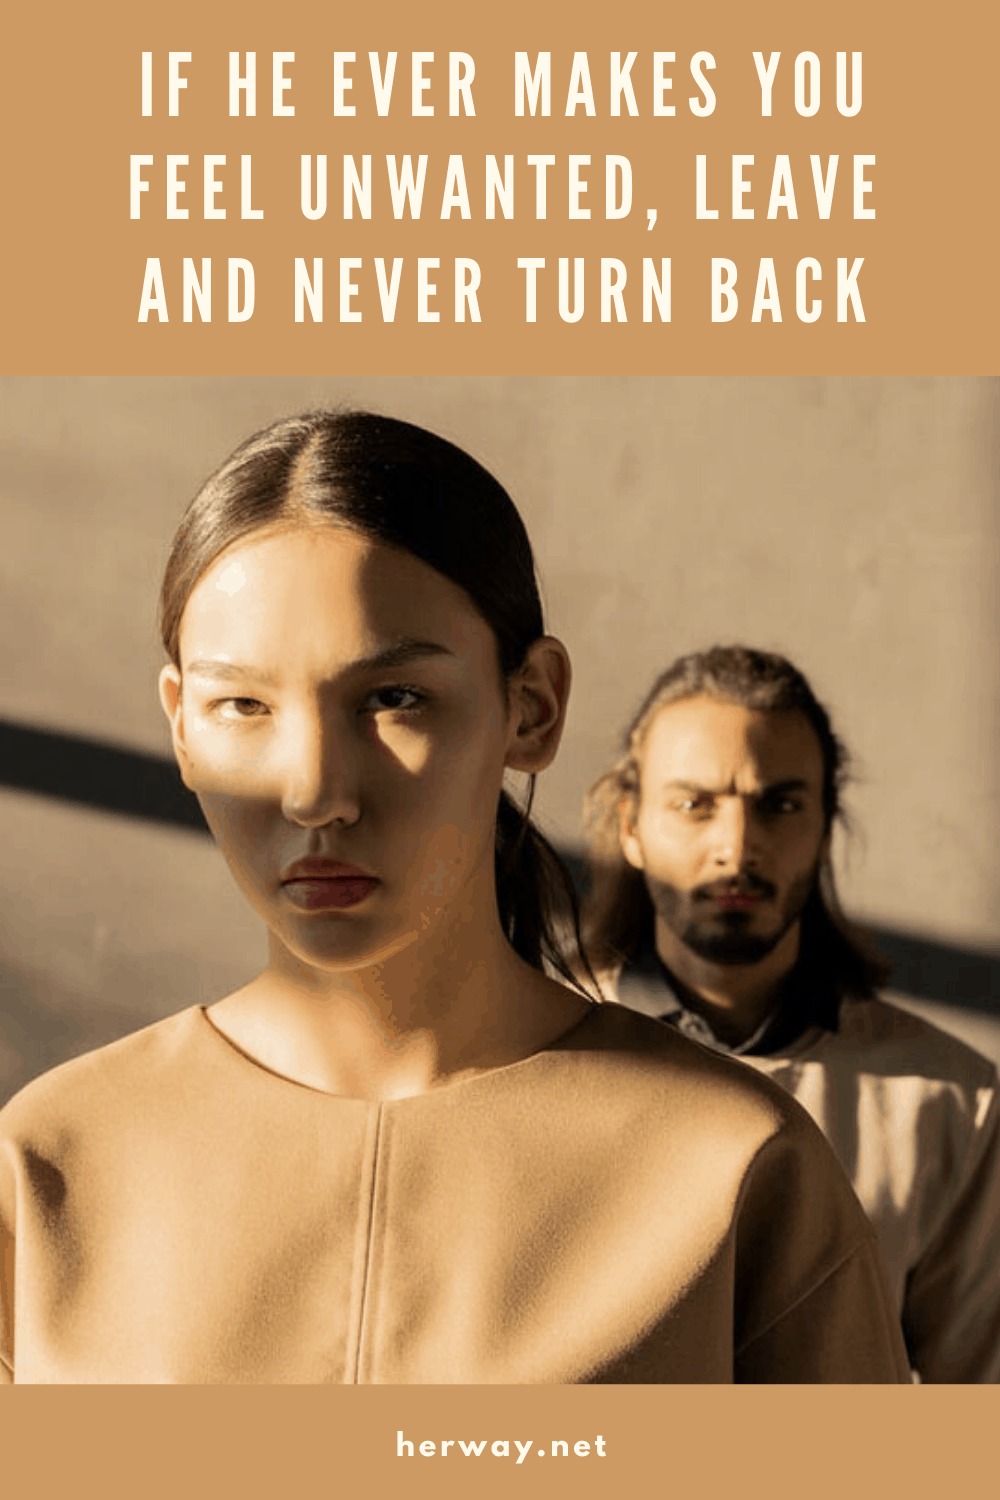 If He Ever Makes You Feel Unwanted, Leave And Never Turn Back